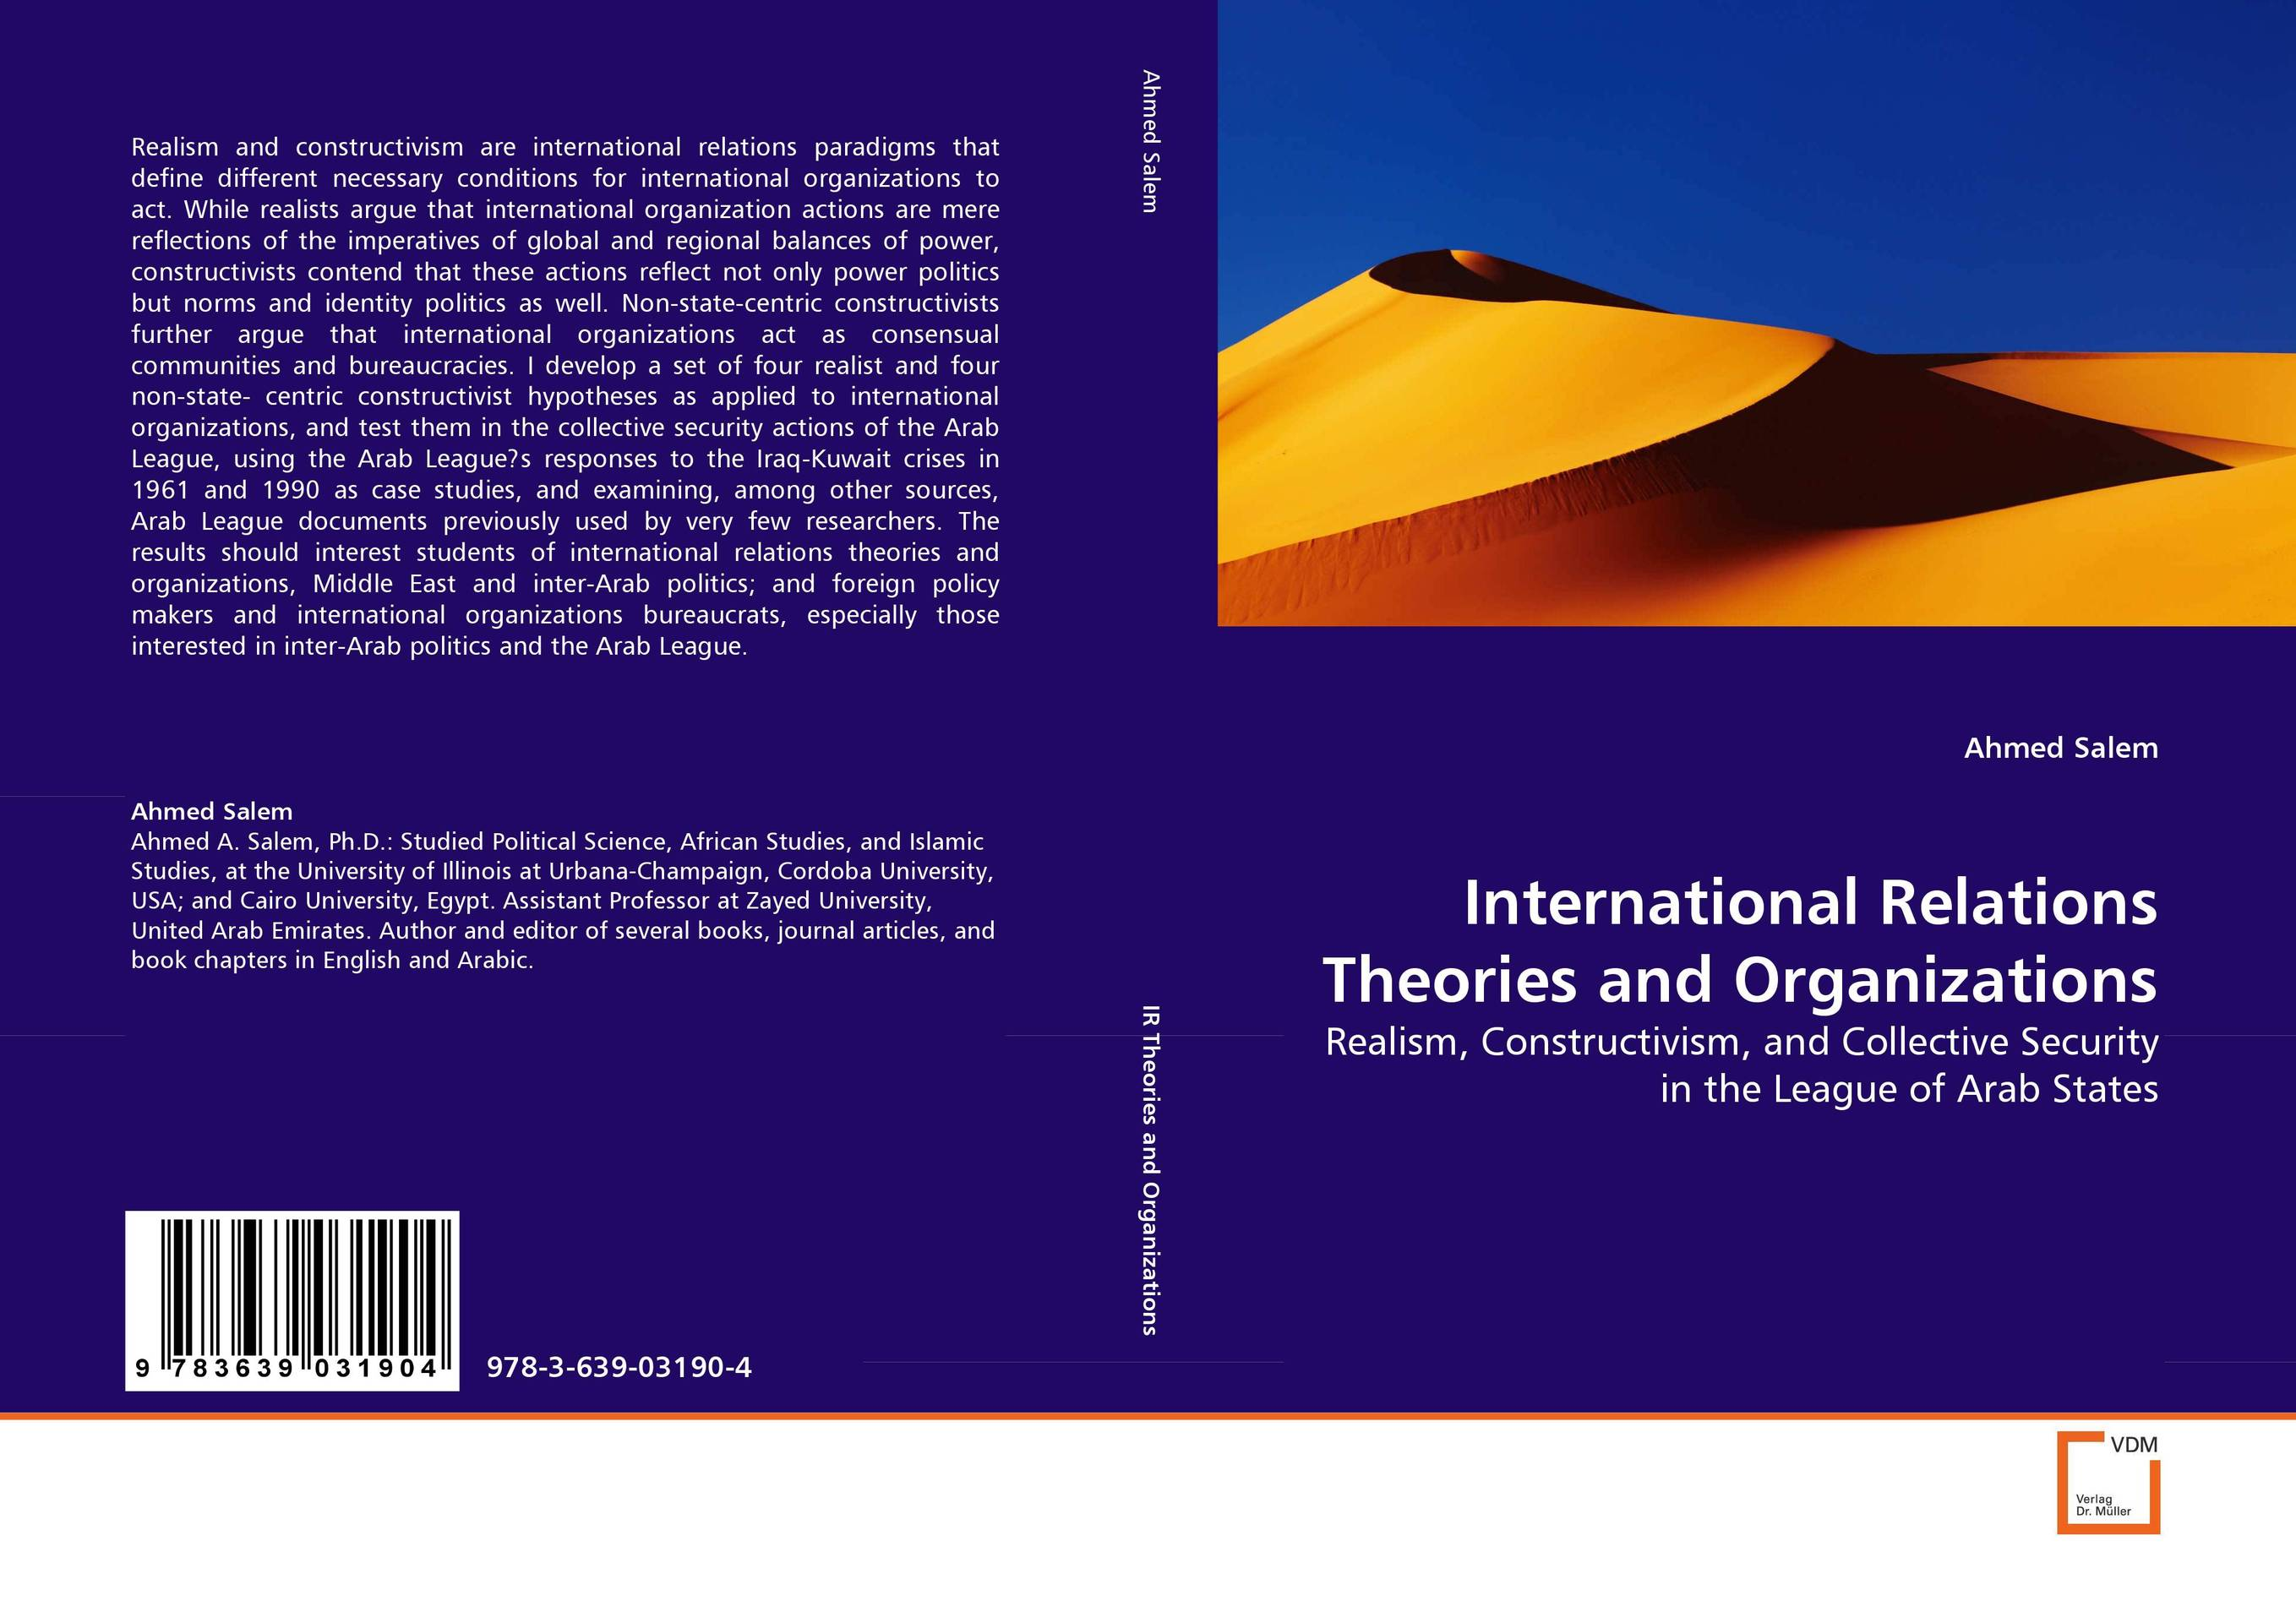 International Relations Theories and Organizations the role of the league of arab states